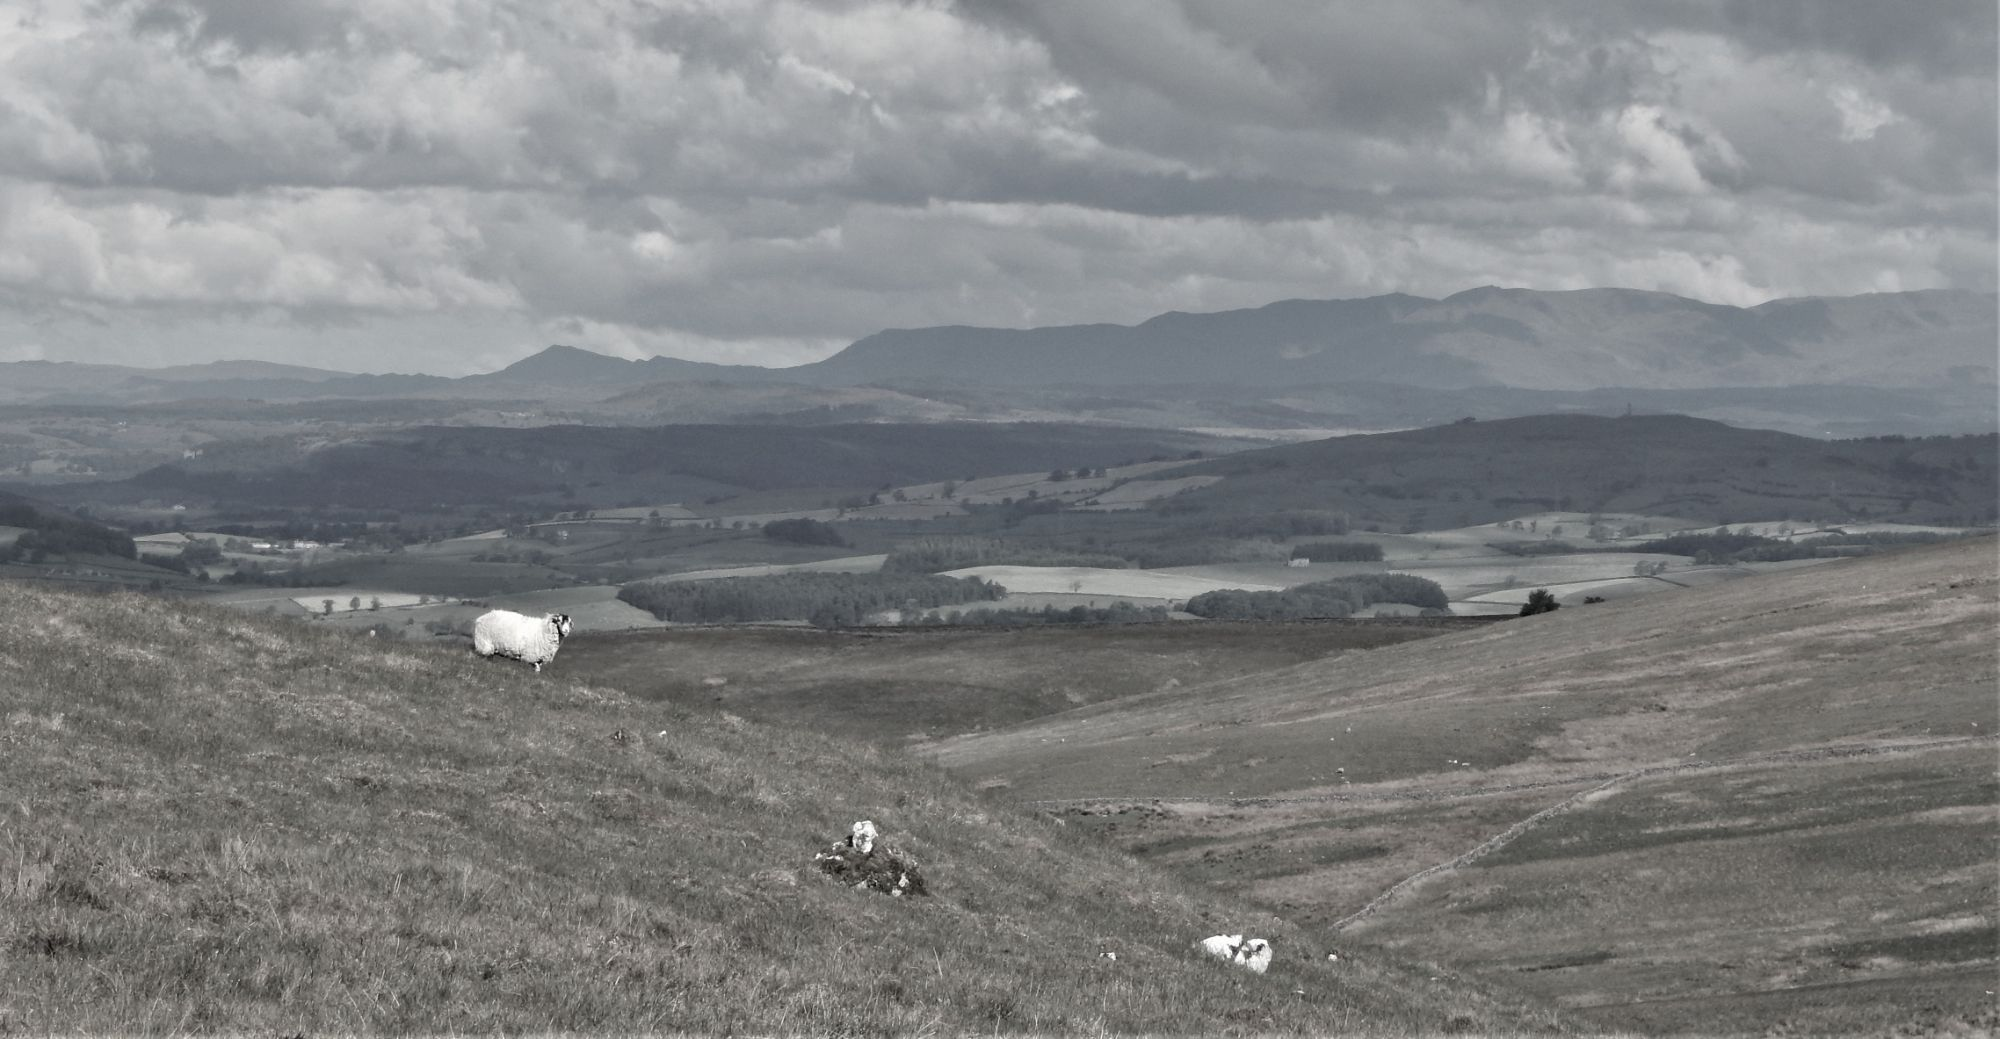 View from Tow Scar, close to the site towards the Lakeland Fells